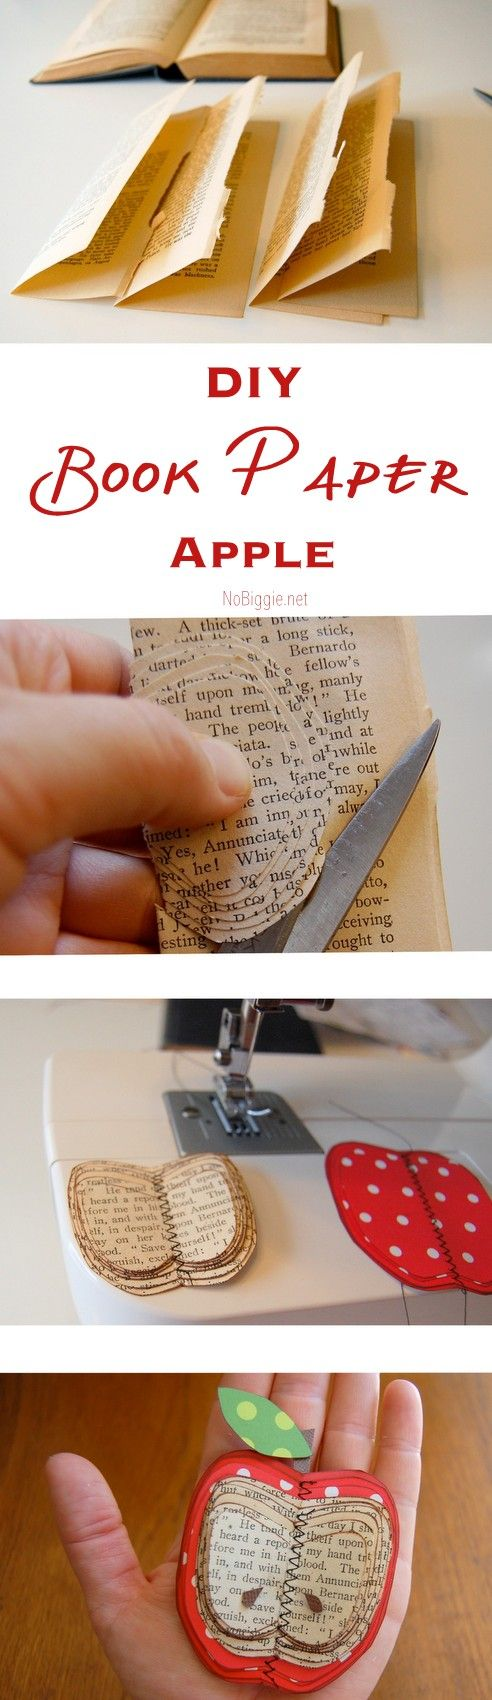 DIY book paper apple - make this fun paper craft with cool vintage book paper | NoBiggie.net: